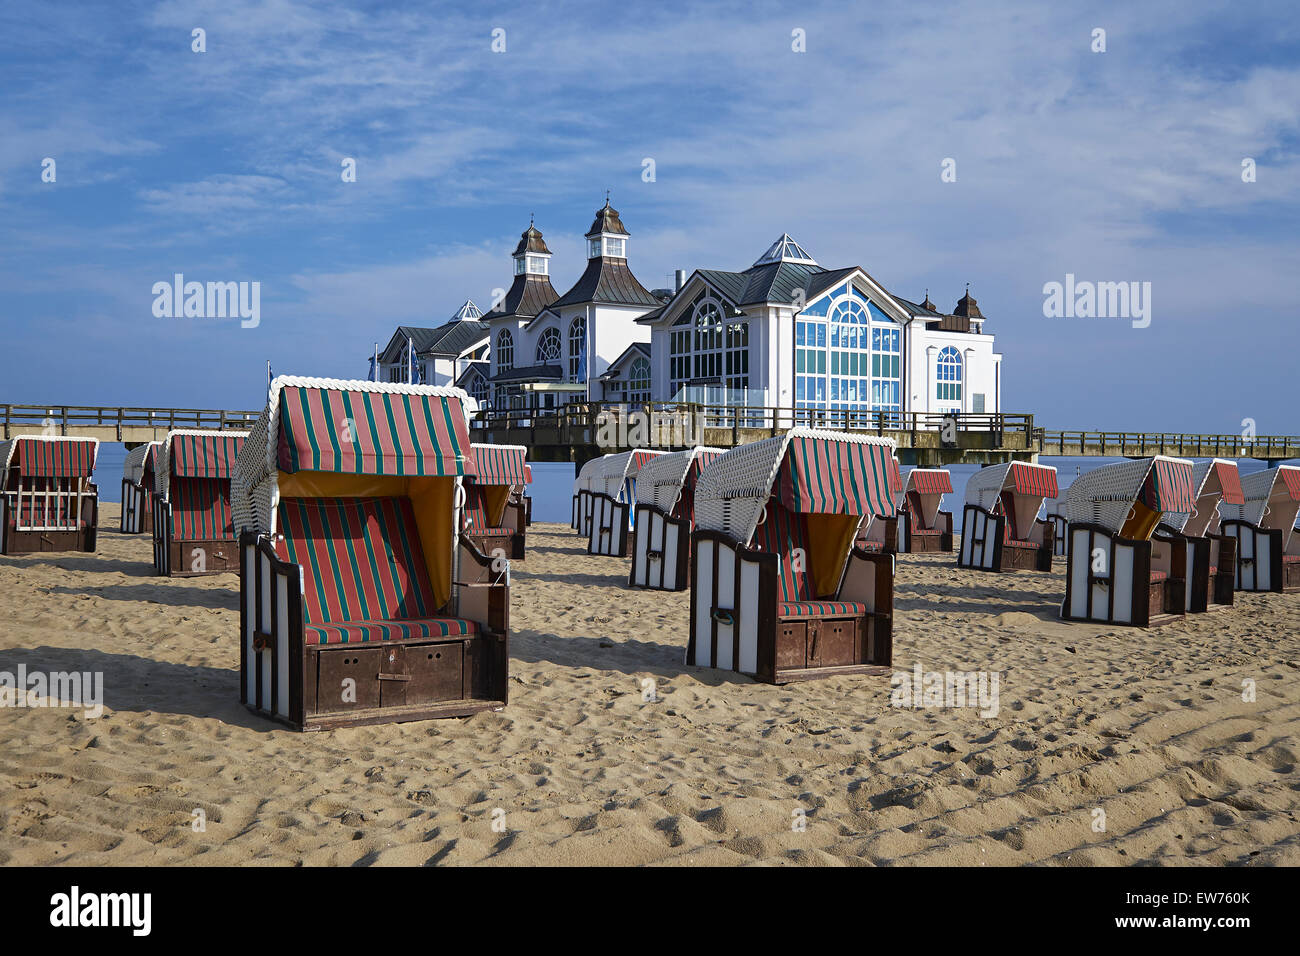 R gen stock photos r gen stock images alamy for Villa sellin rugen